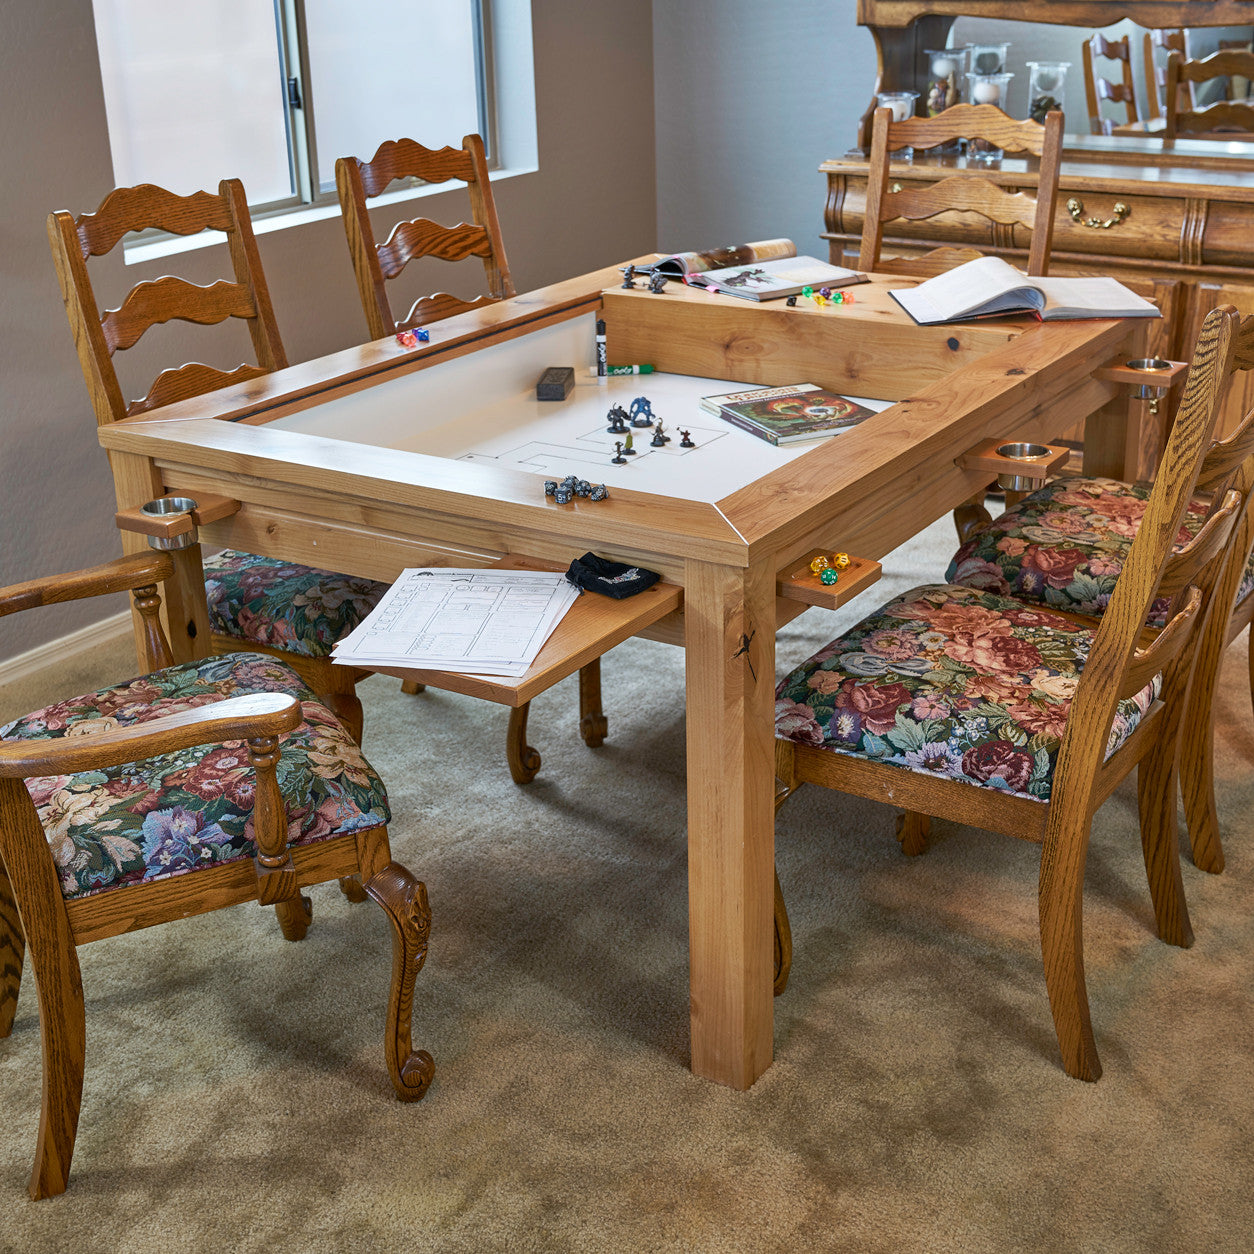 The Earl Rustic Custom Gaming Table With Lid Off Set Up For Gaming In A  Kitchen ...